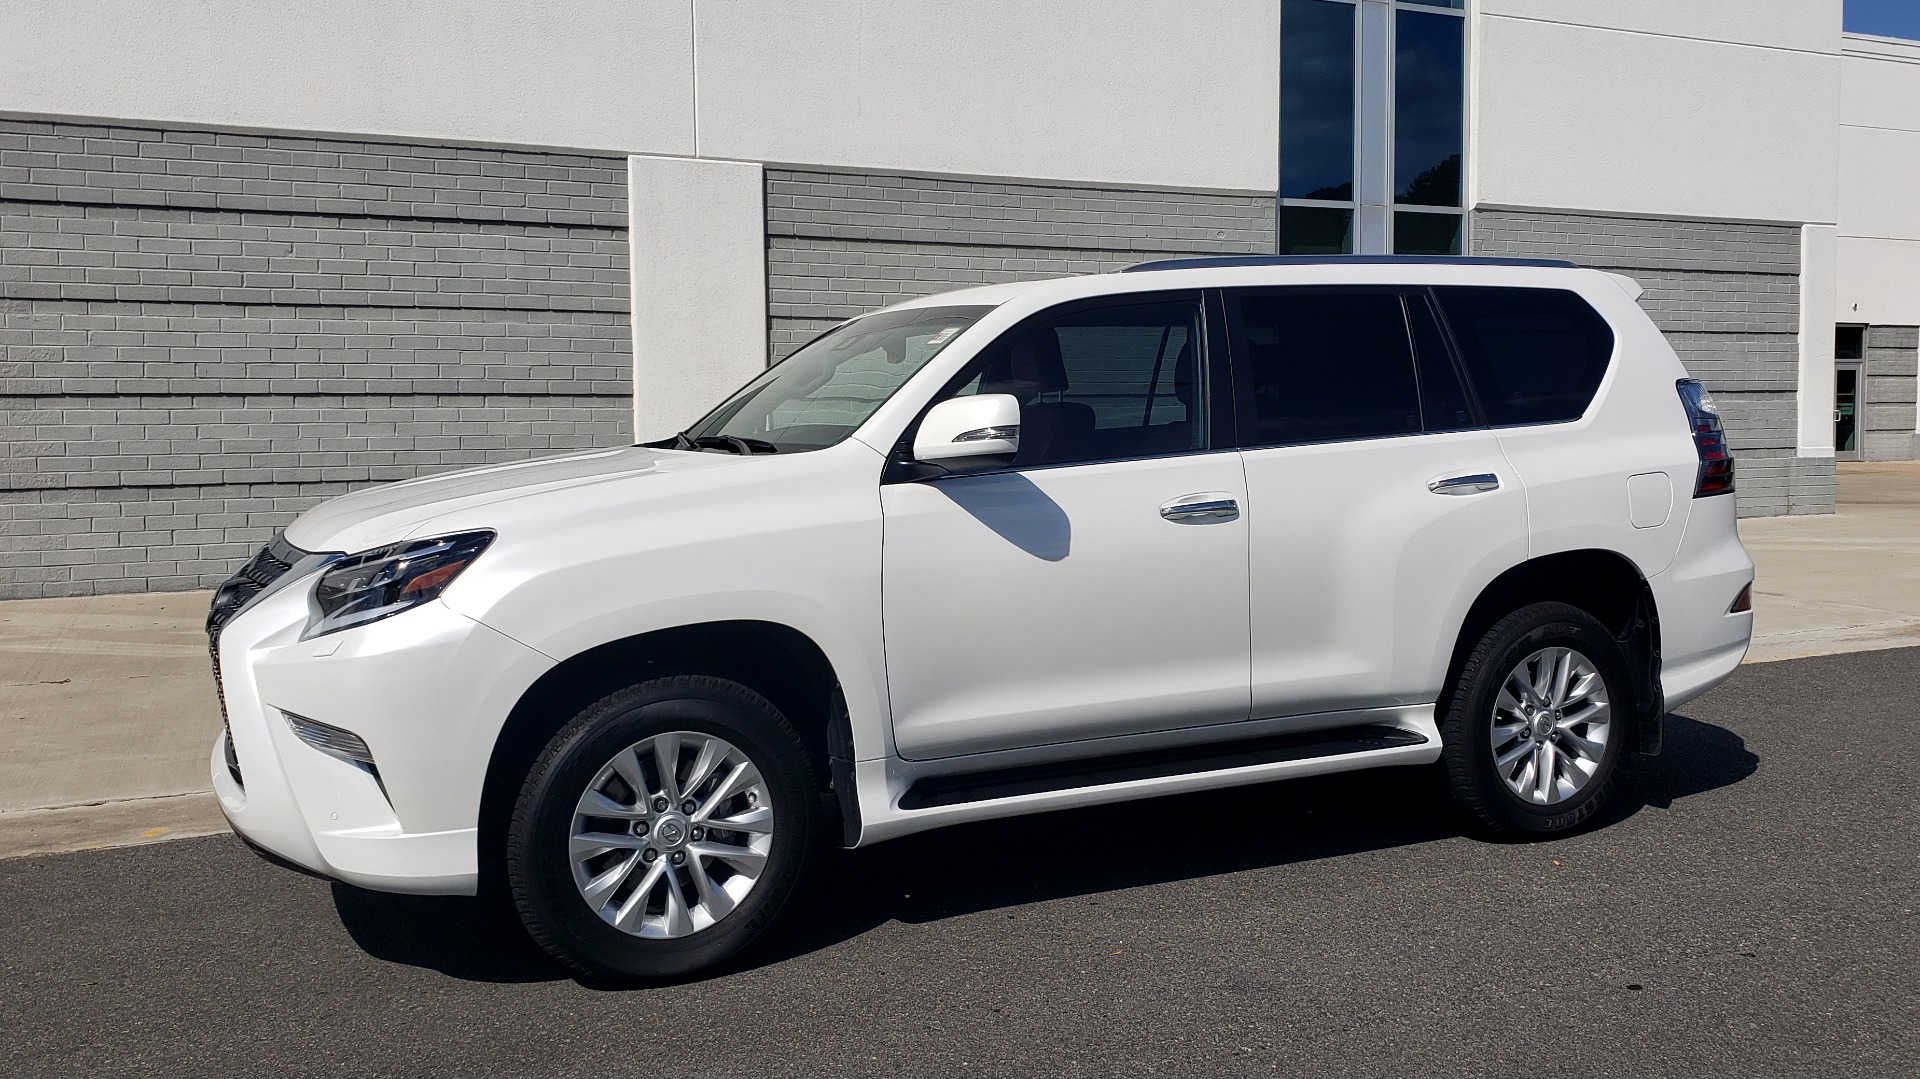 Used 2021 Lexus GX 460 PREMIUM / AWD / NAV / SUNROOF / 3-ROW / REARVIEW for sale Sold at Formula Imports in Charlotte NC 28227 3